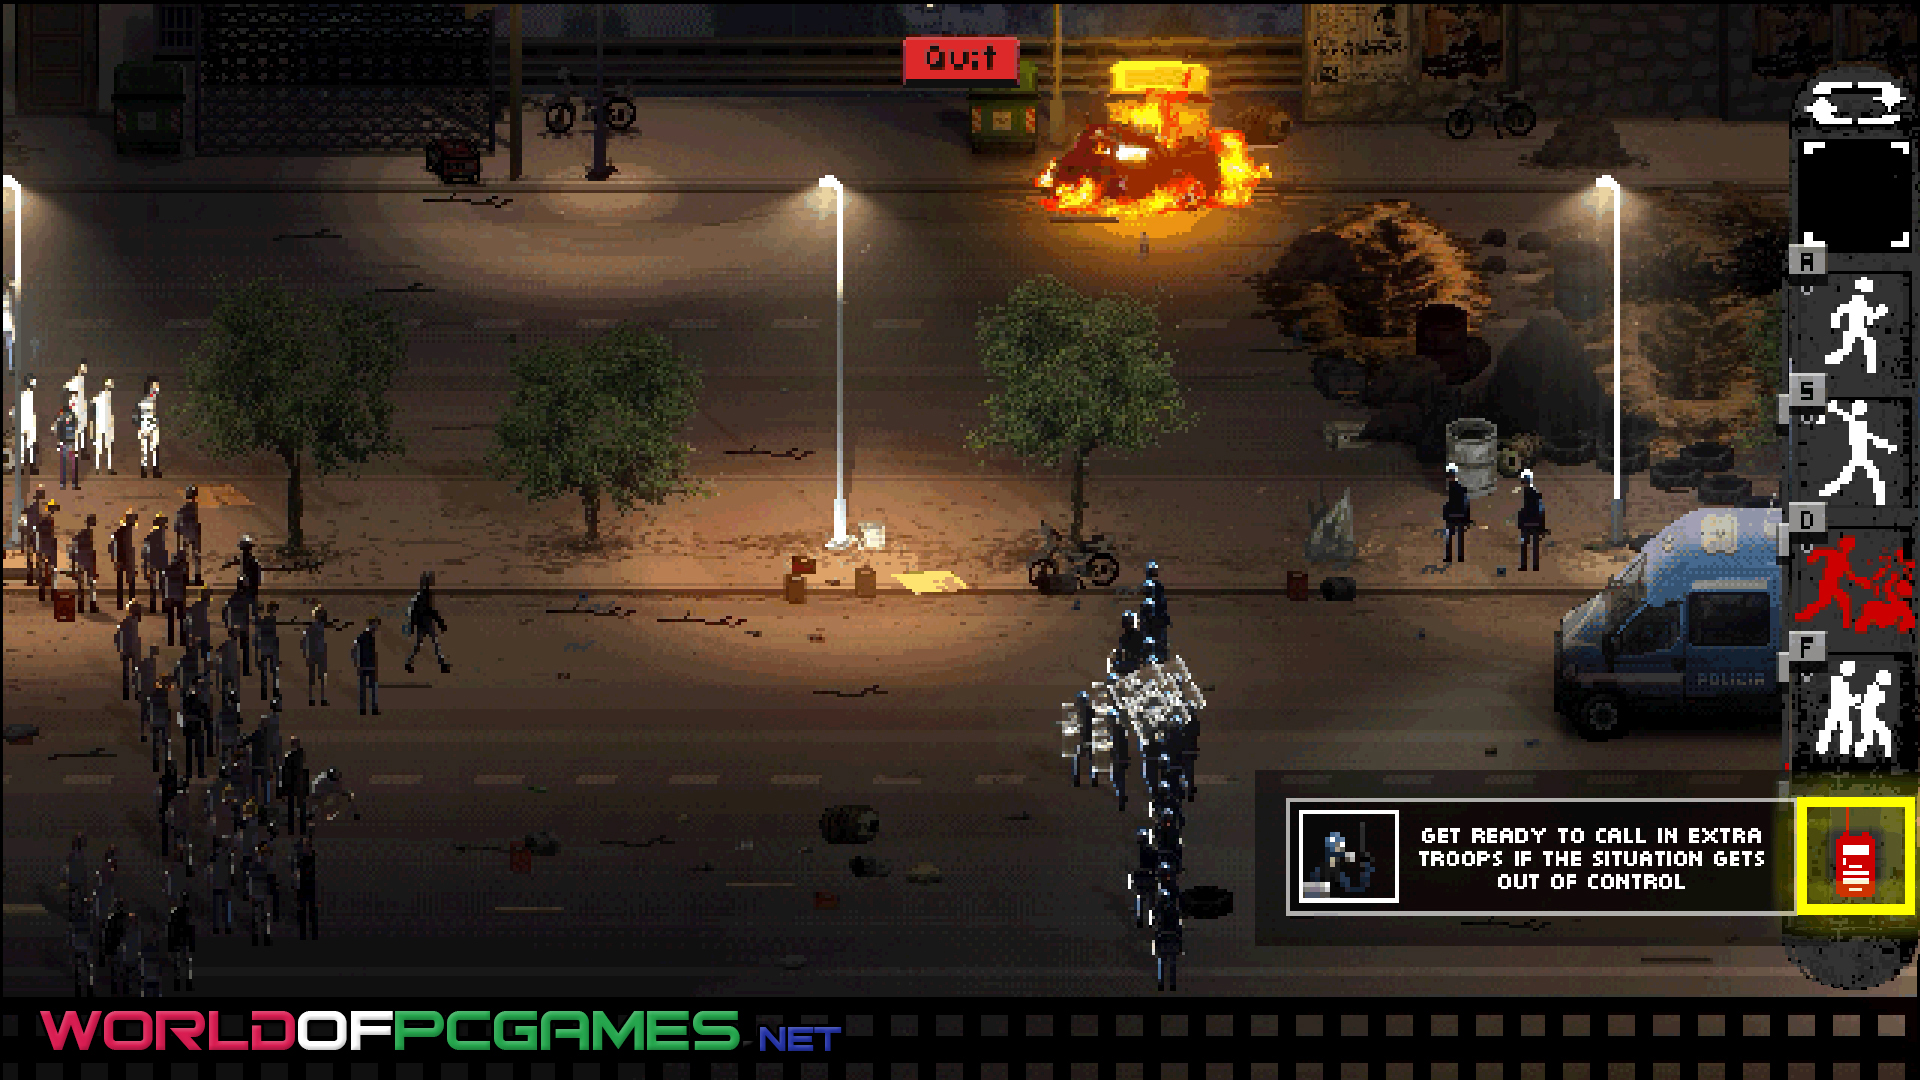 Riot Civil Unrest Free Download PC Game By Worldofpcgames.net